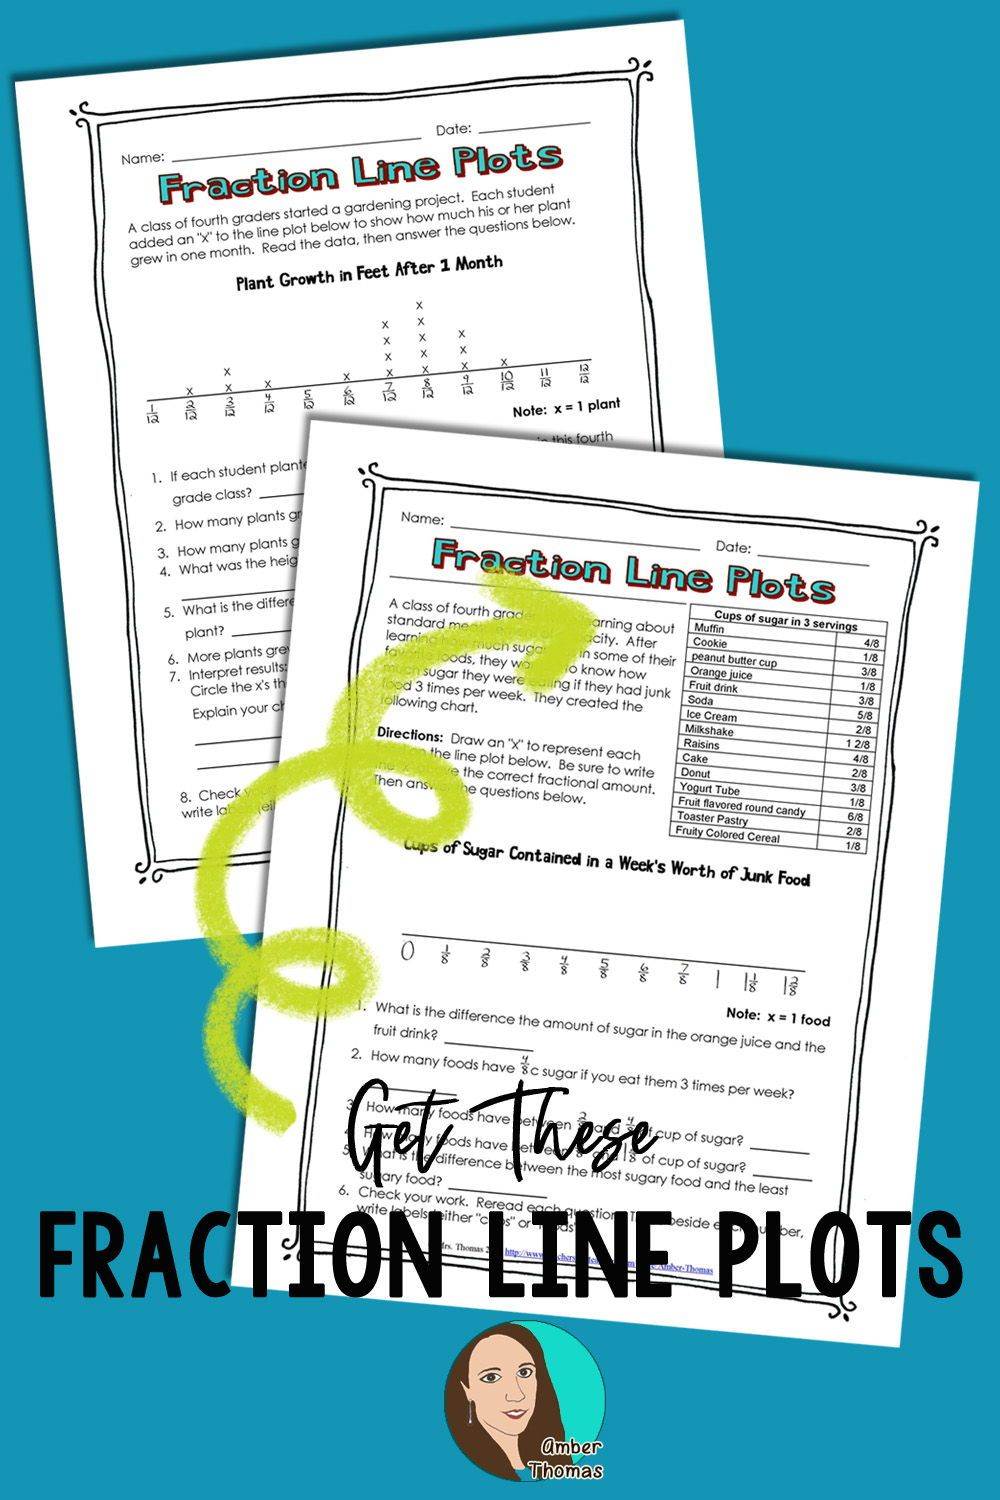 Fraction Line Plot Worksheets In 2020 Line Plot Worksheets Elementary Math Lessons Elementary Teaching Resources